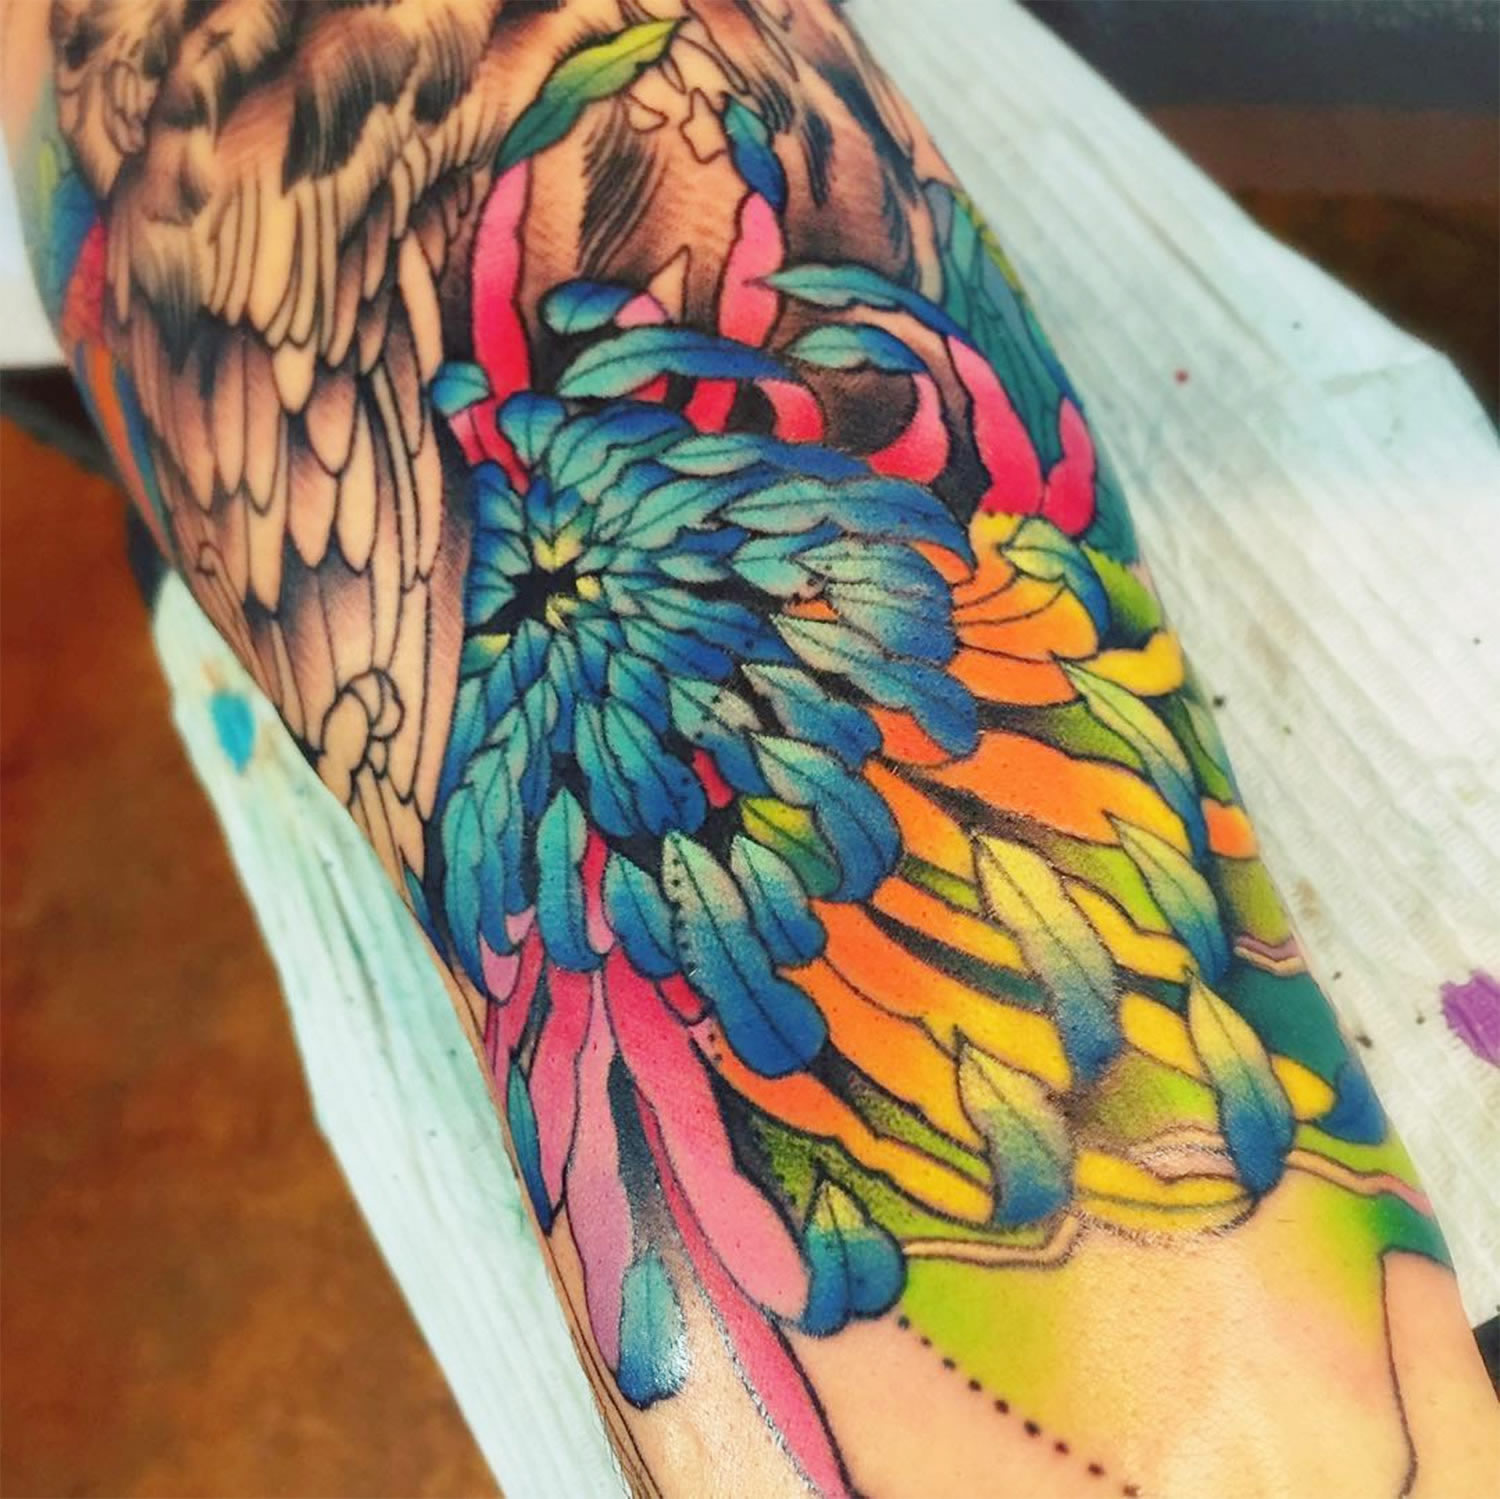 closeup of tattoo, feathers